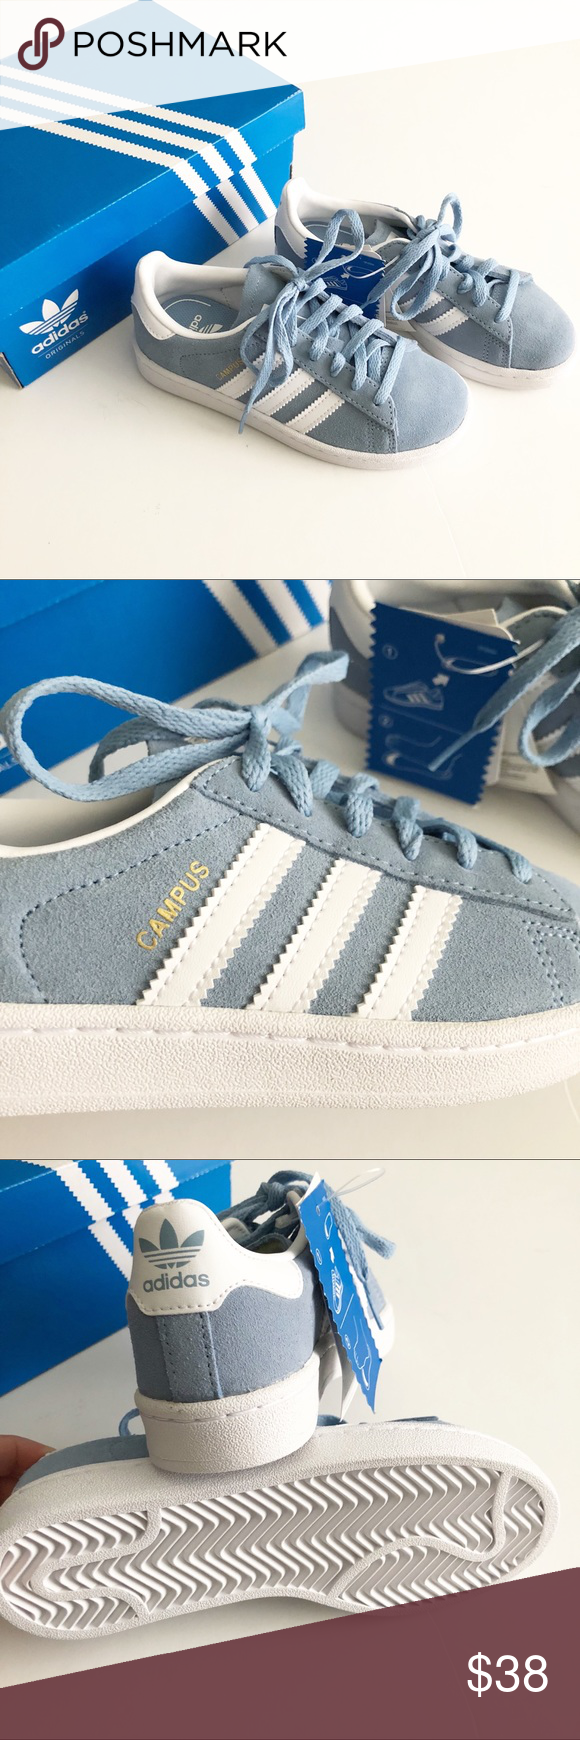 NWT! Adidas Campus Originals Sneakers Brand new! Great